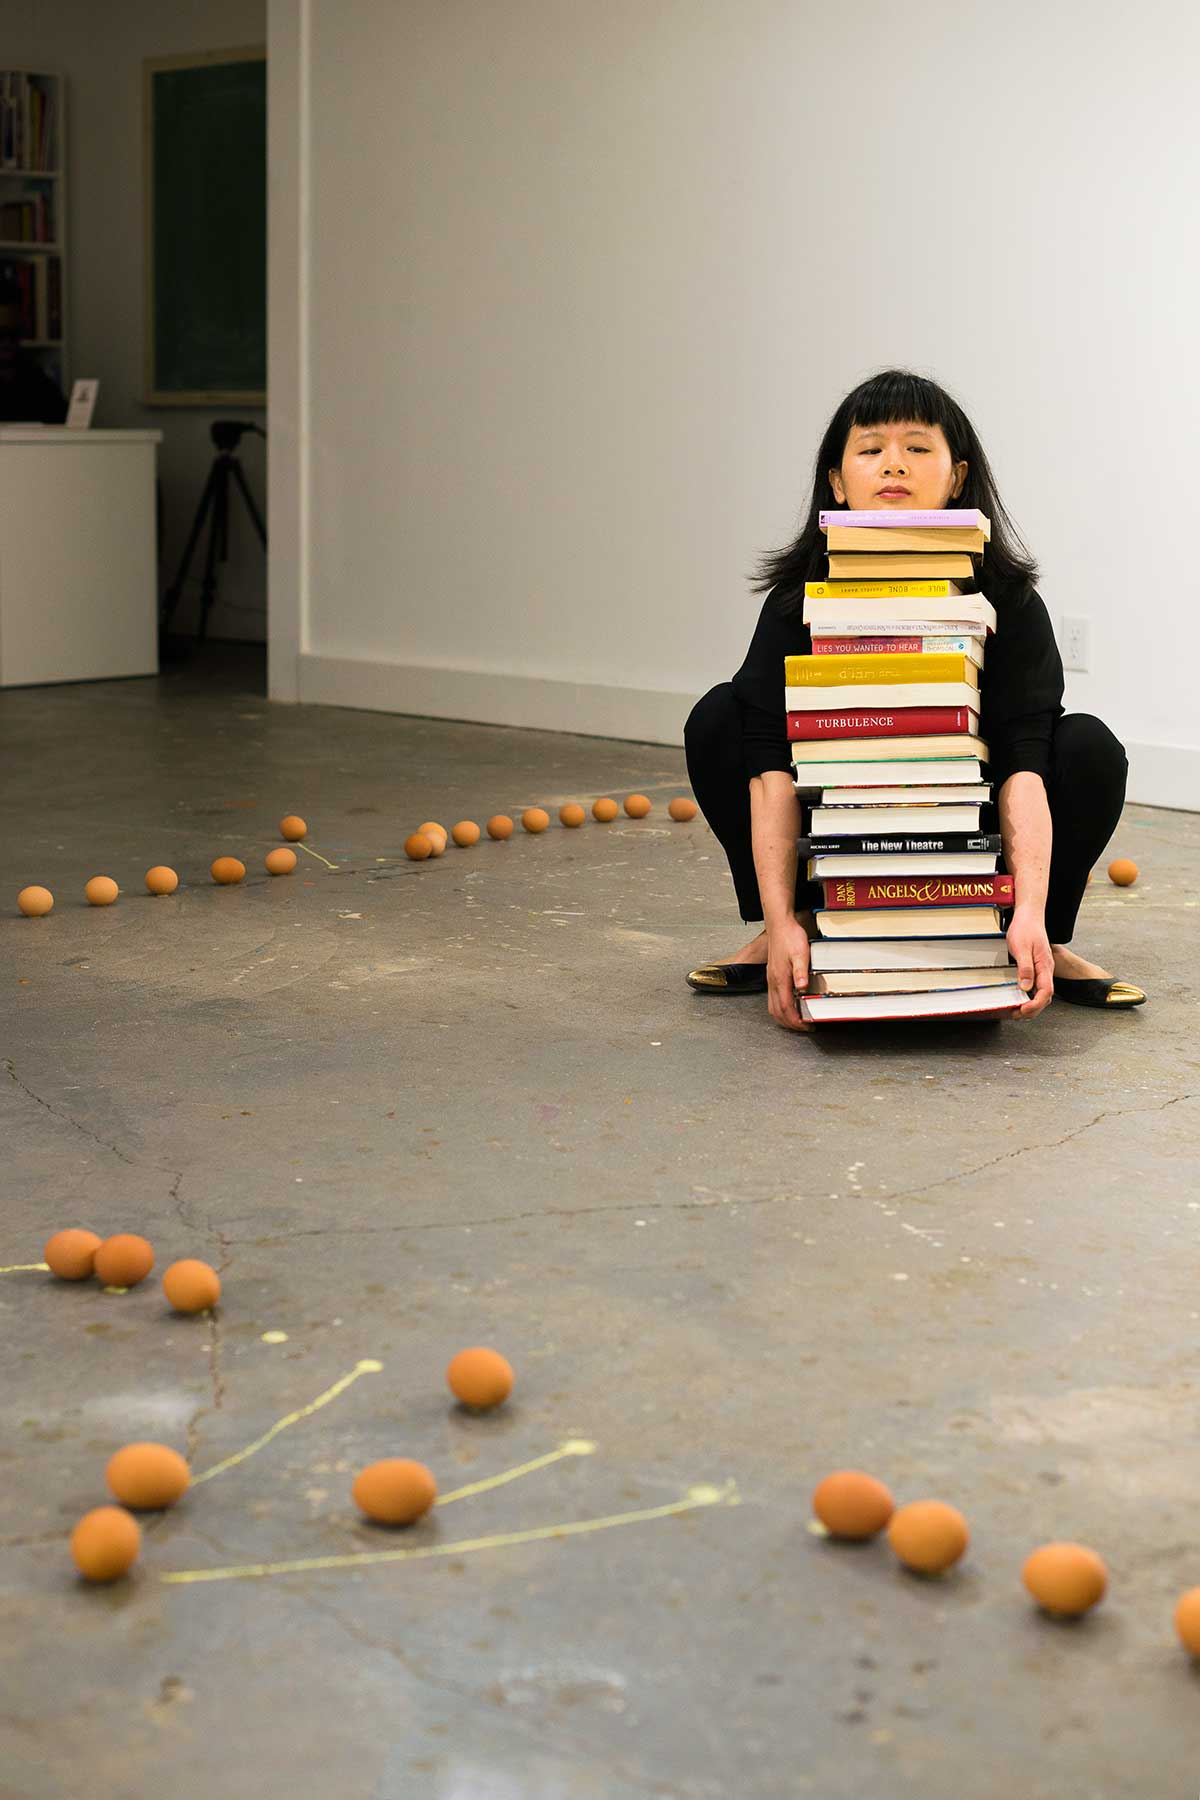 Chun Hua Catherine Dong tries to lift a stack of heavy books while being surrounded by eggs